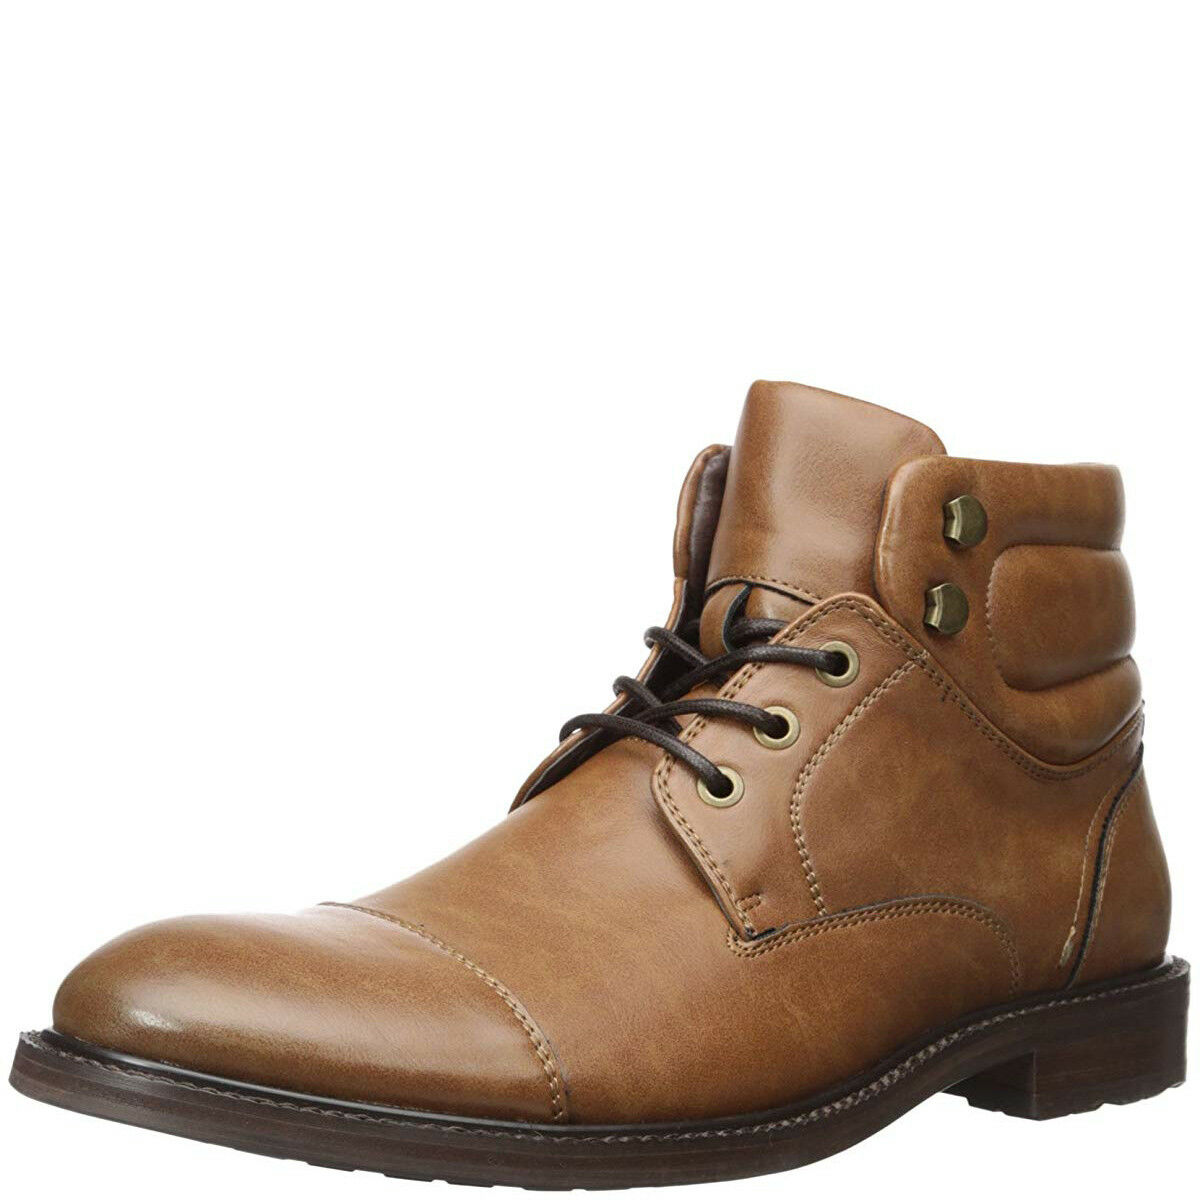 Kenneth Cole Unlisted mens Roll With It Chukka Stiefel Cognac braun 13 M MSRP 7...